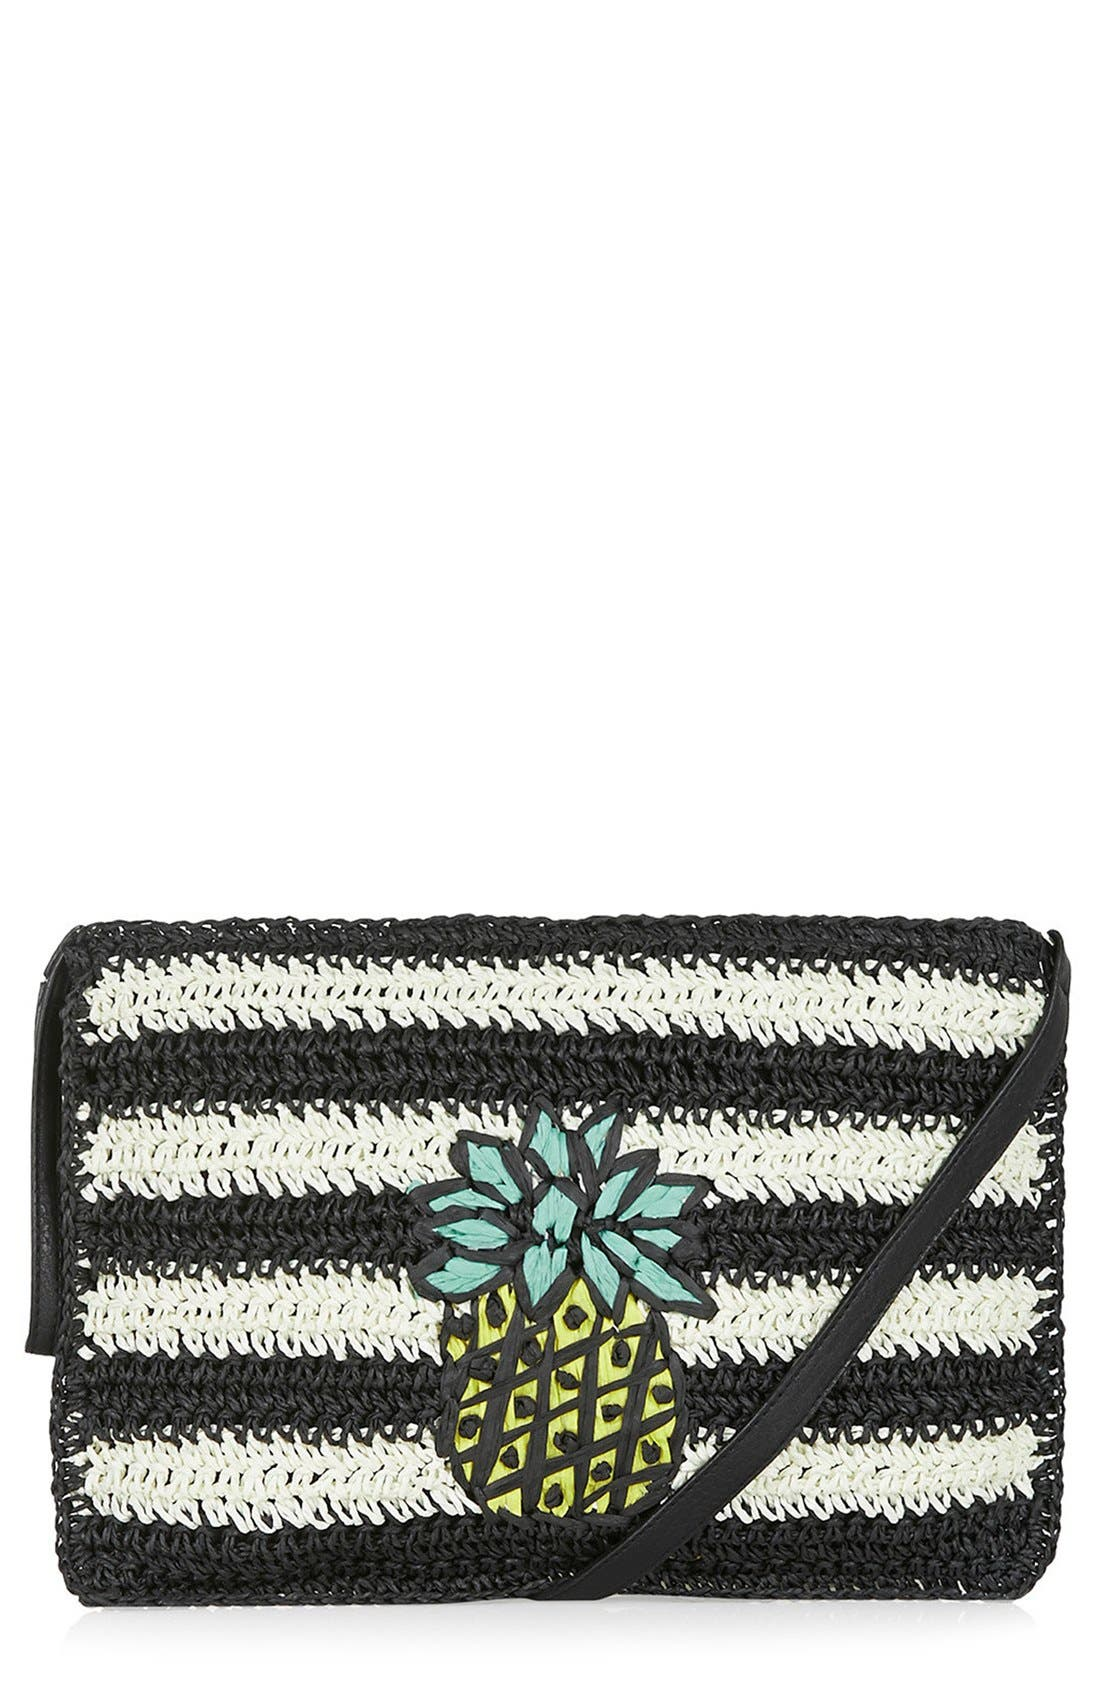 Alternate Image 1 Selected - Topshop 'Pineapple' Woven Clutch